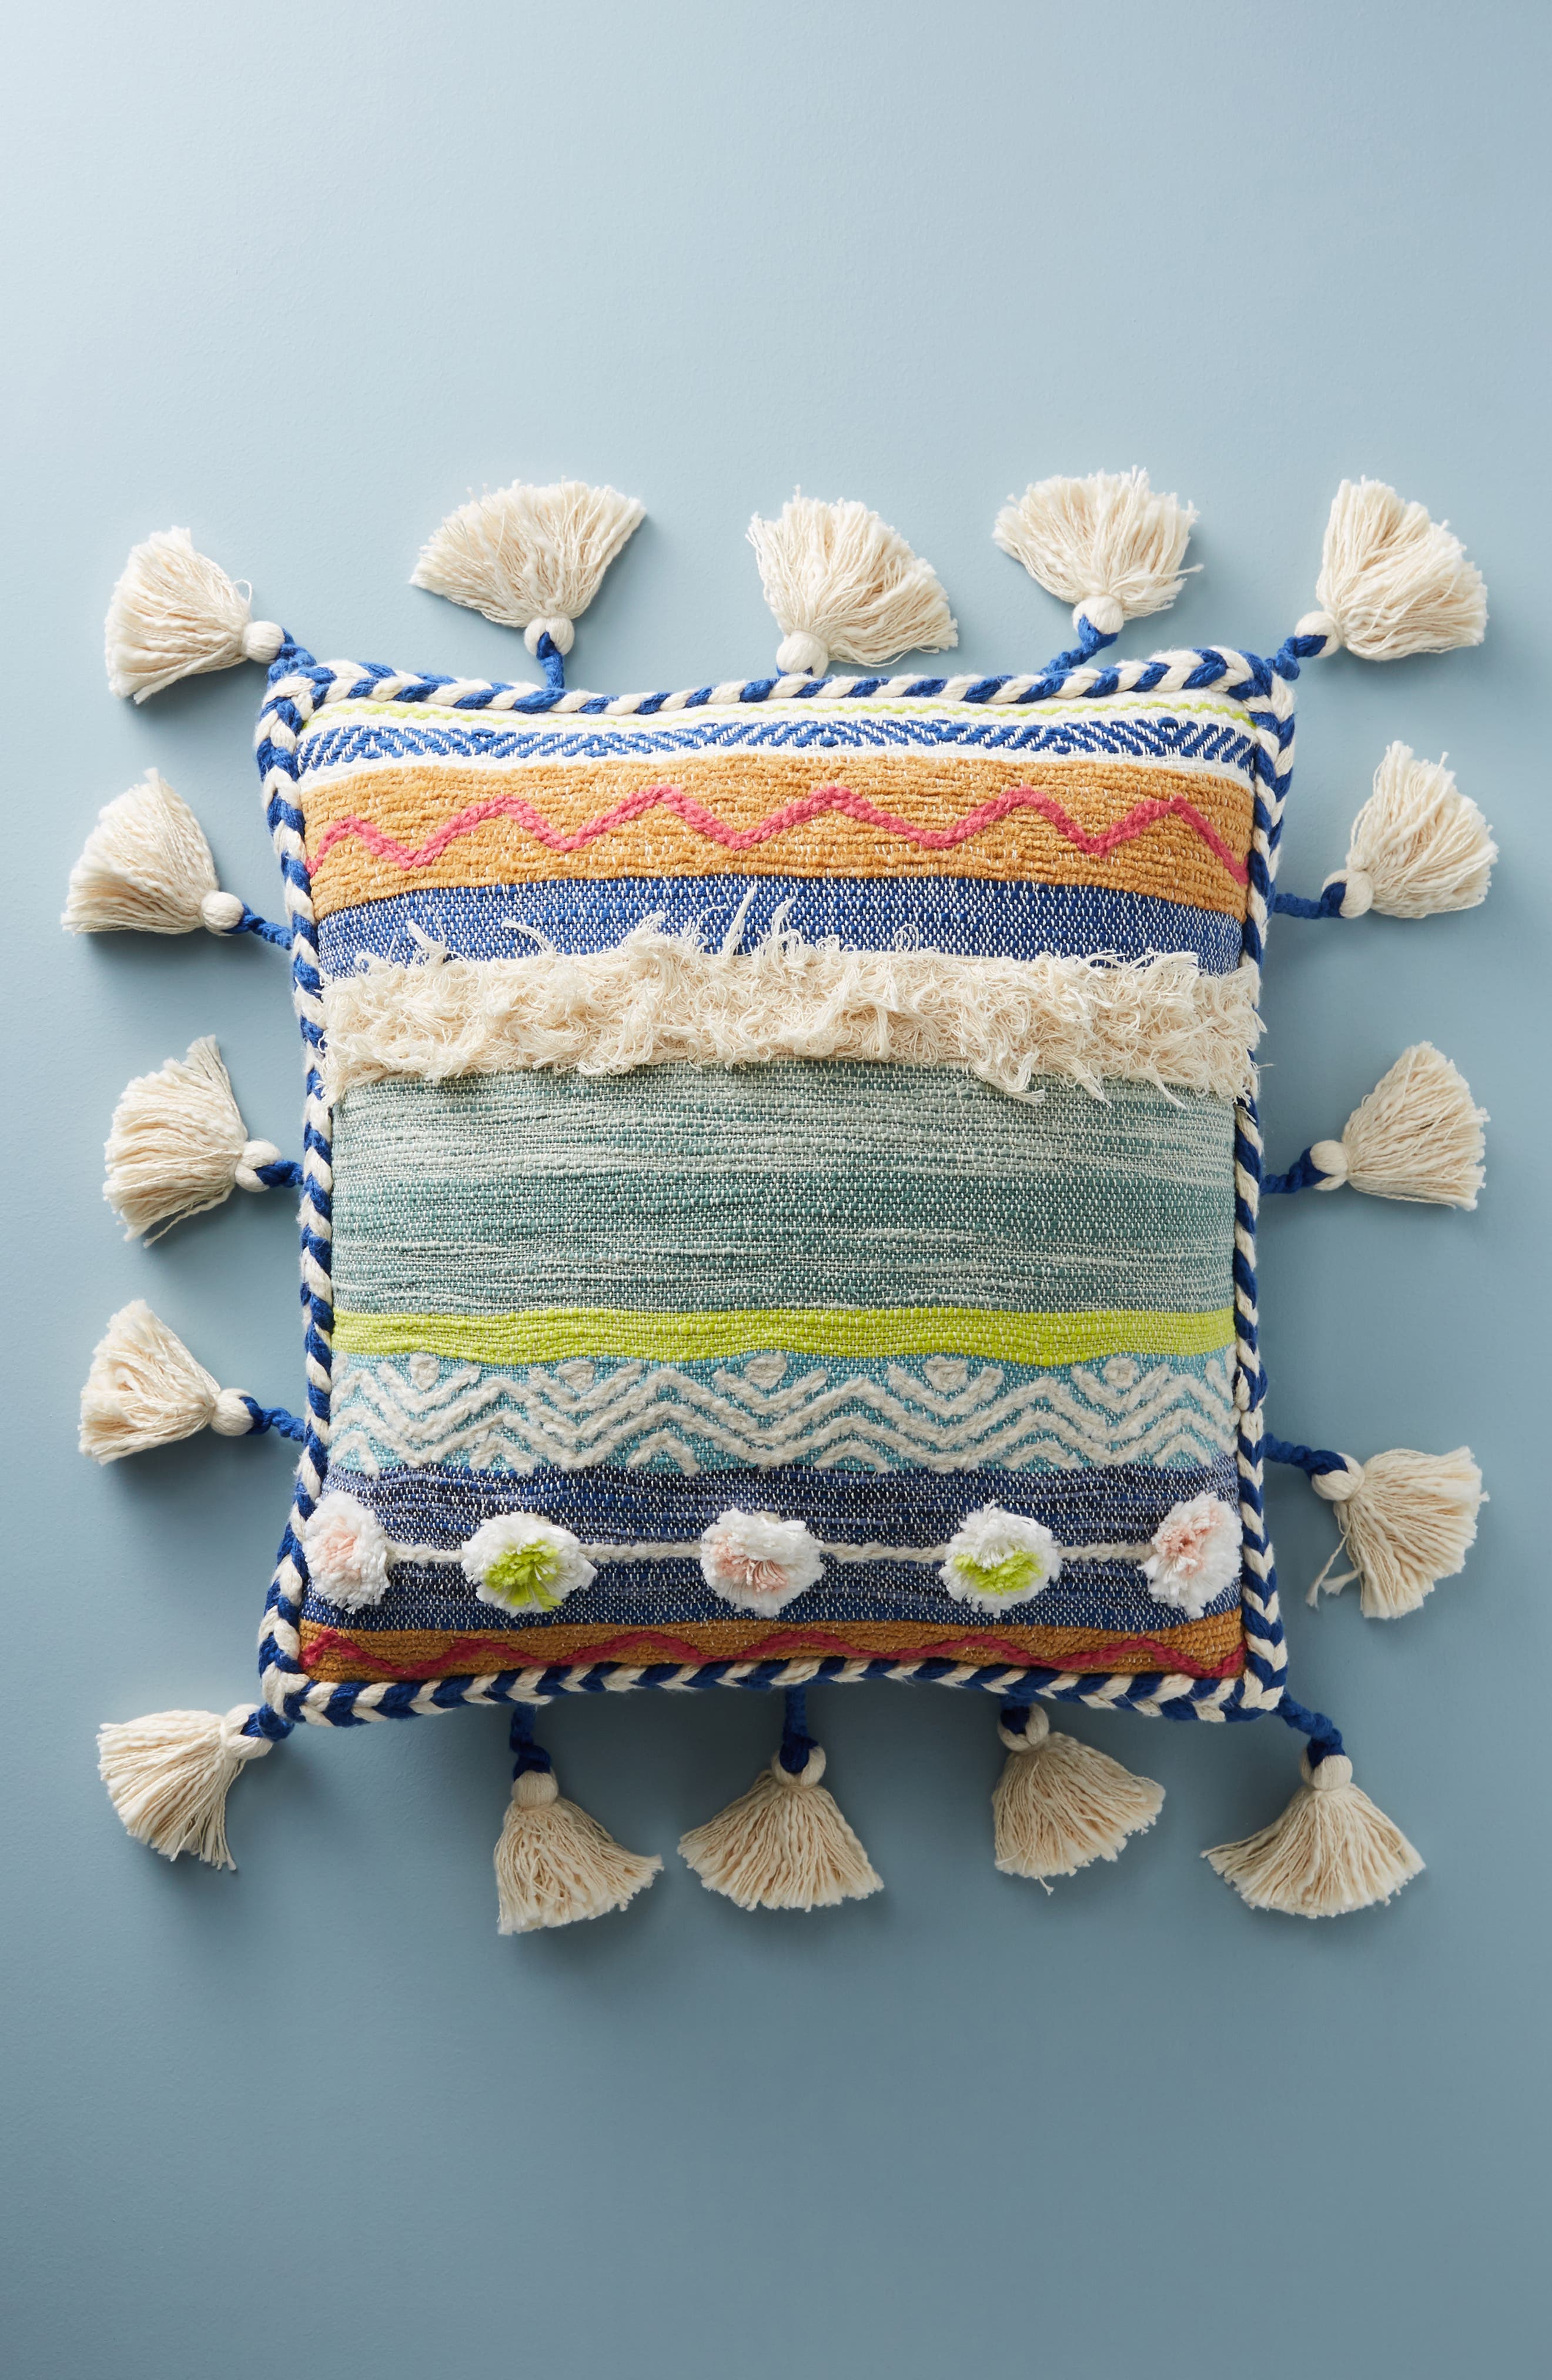 Main Image - Anthropologie Woven Rami Accent Pillow